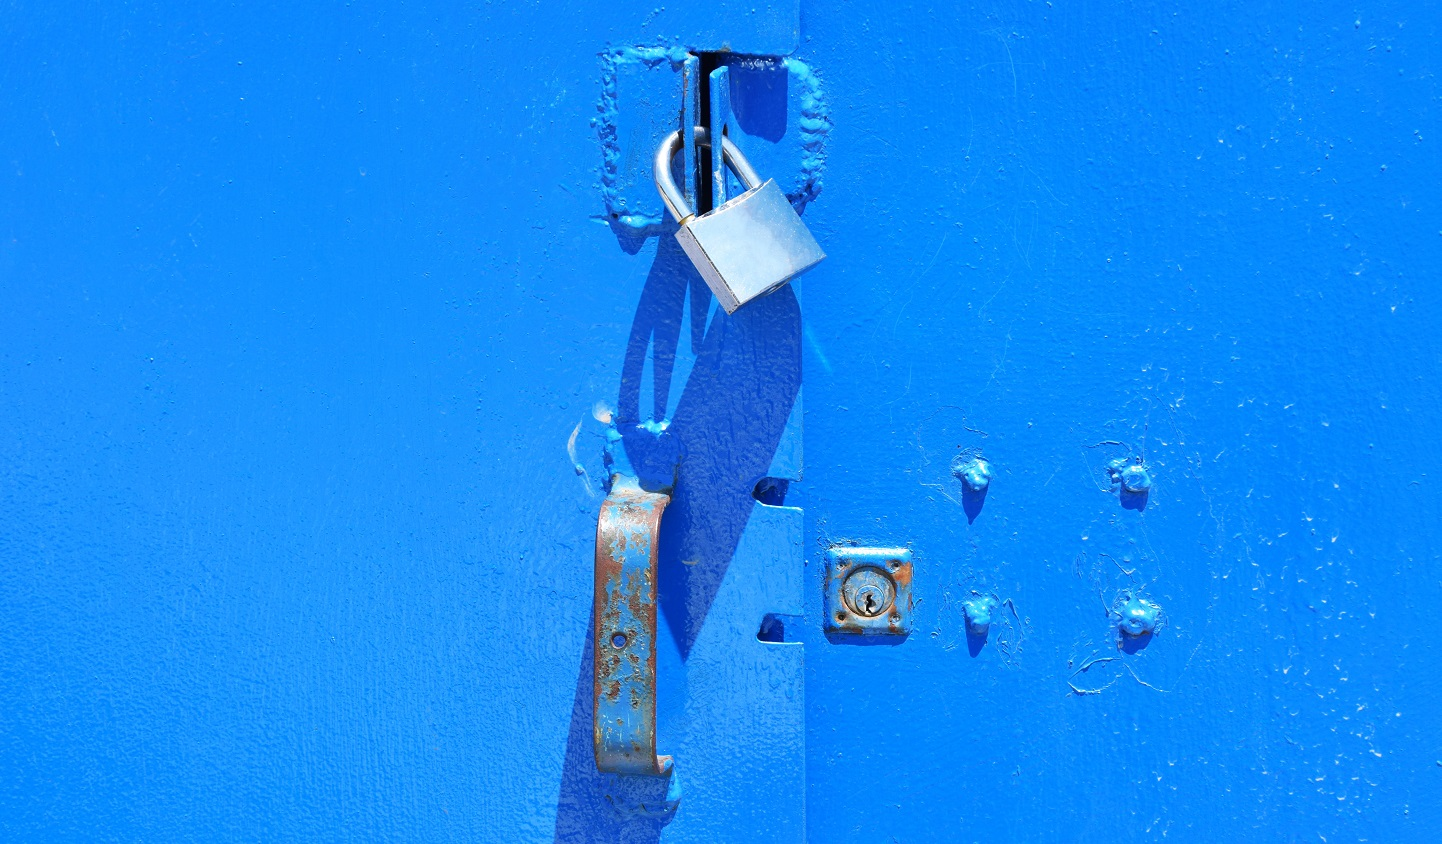 An image of a padlock being used to secure a blue metal door